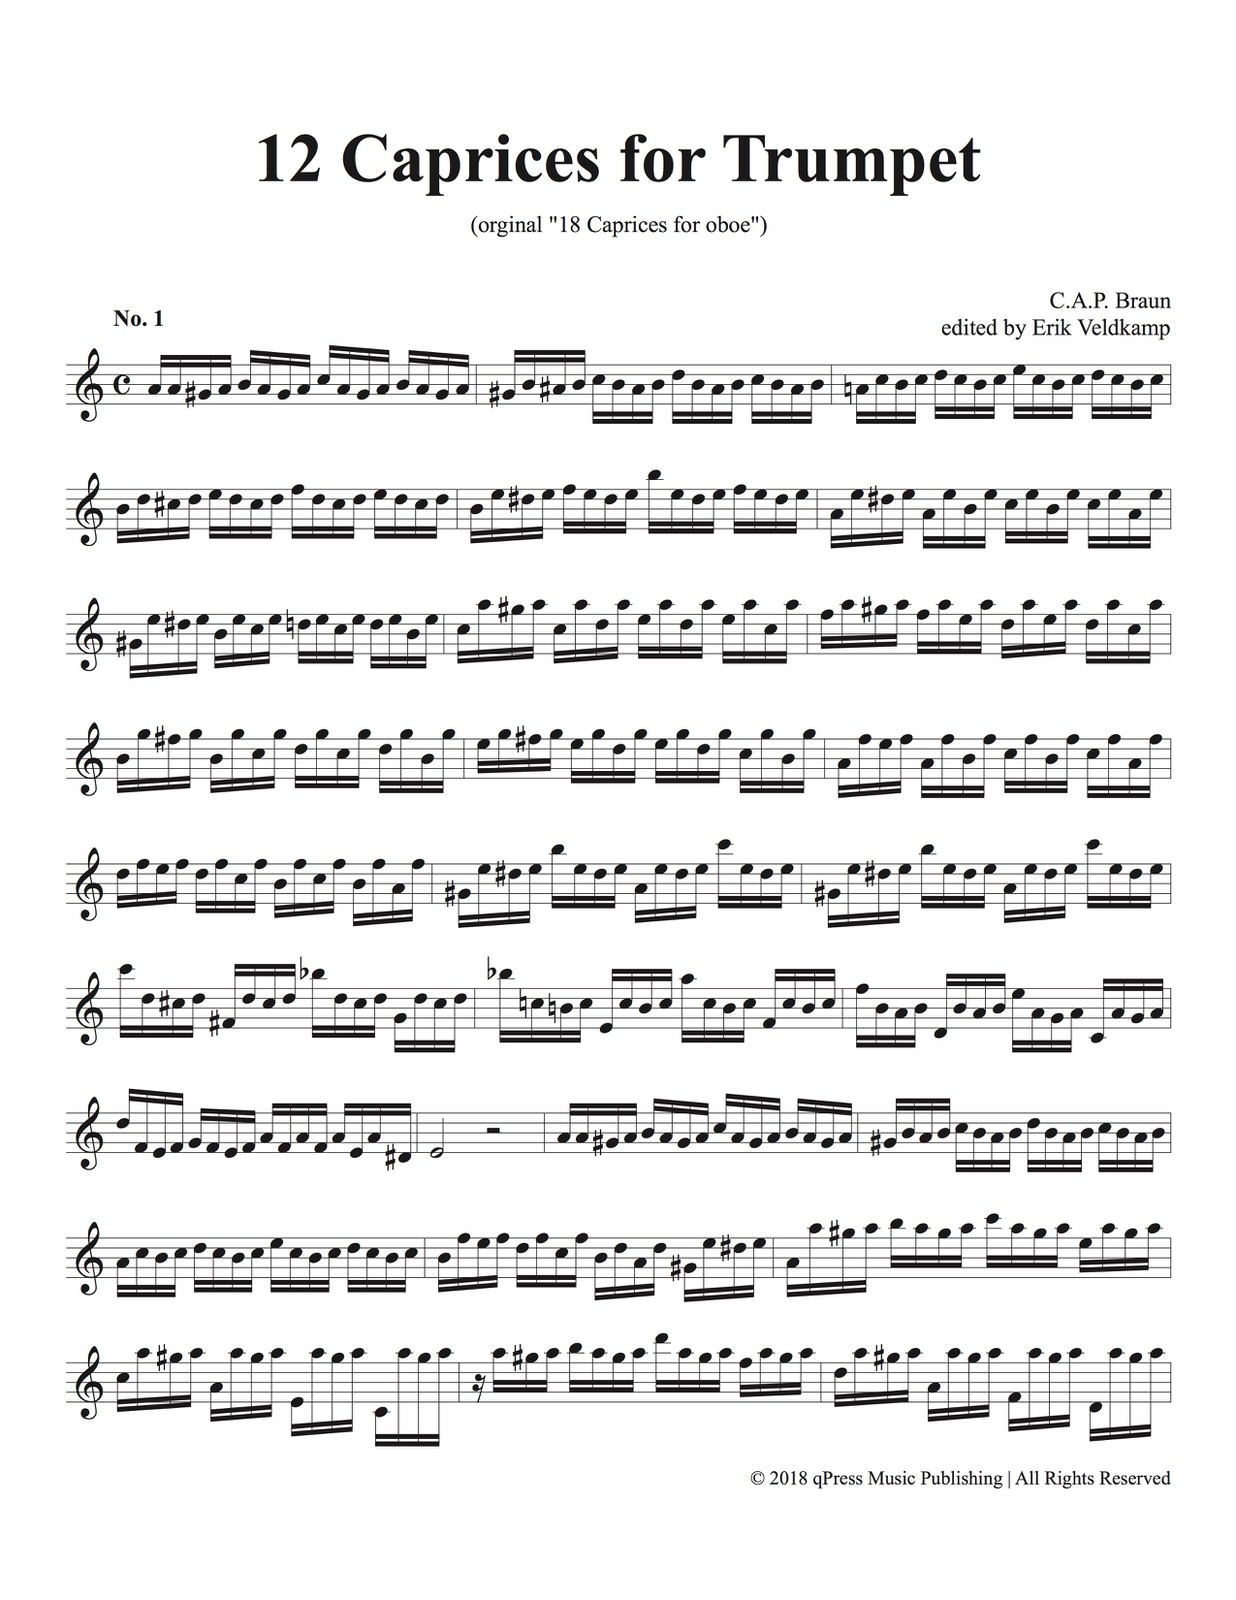 Veldkamp-Braun, 12 Caprices for Trumpet-p02